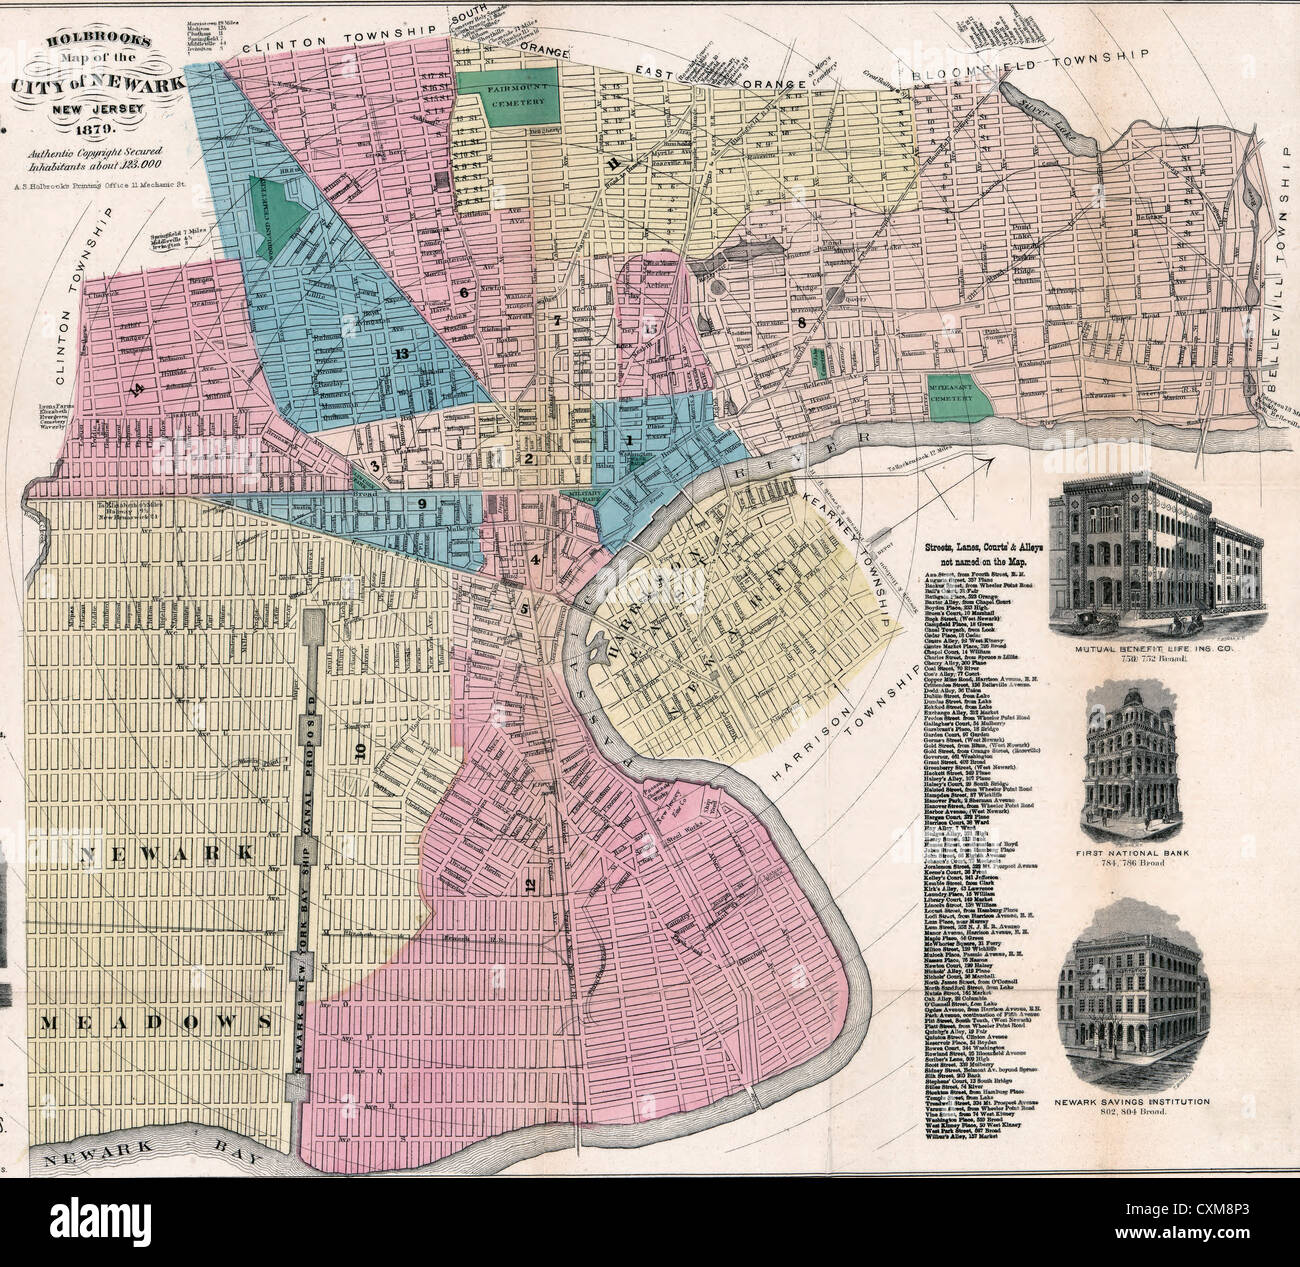 Holbrook's map of the city of Newark, New Jersey. 1879 - Stock Image